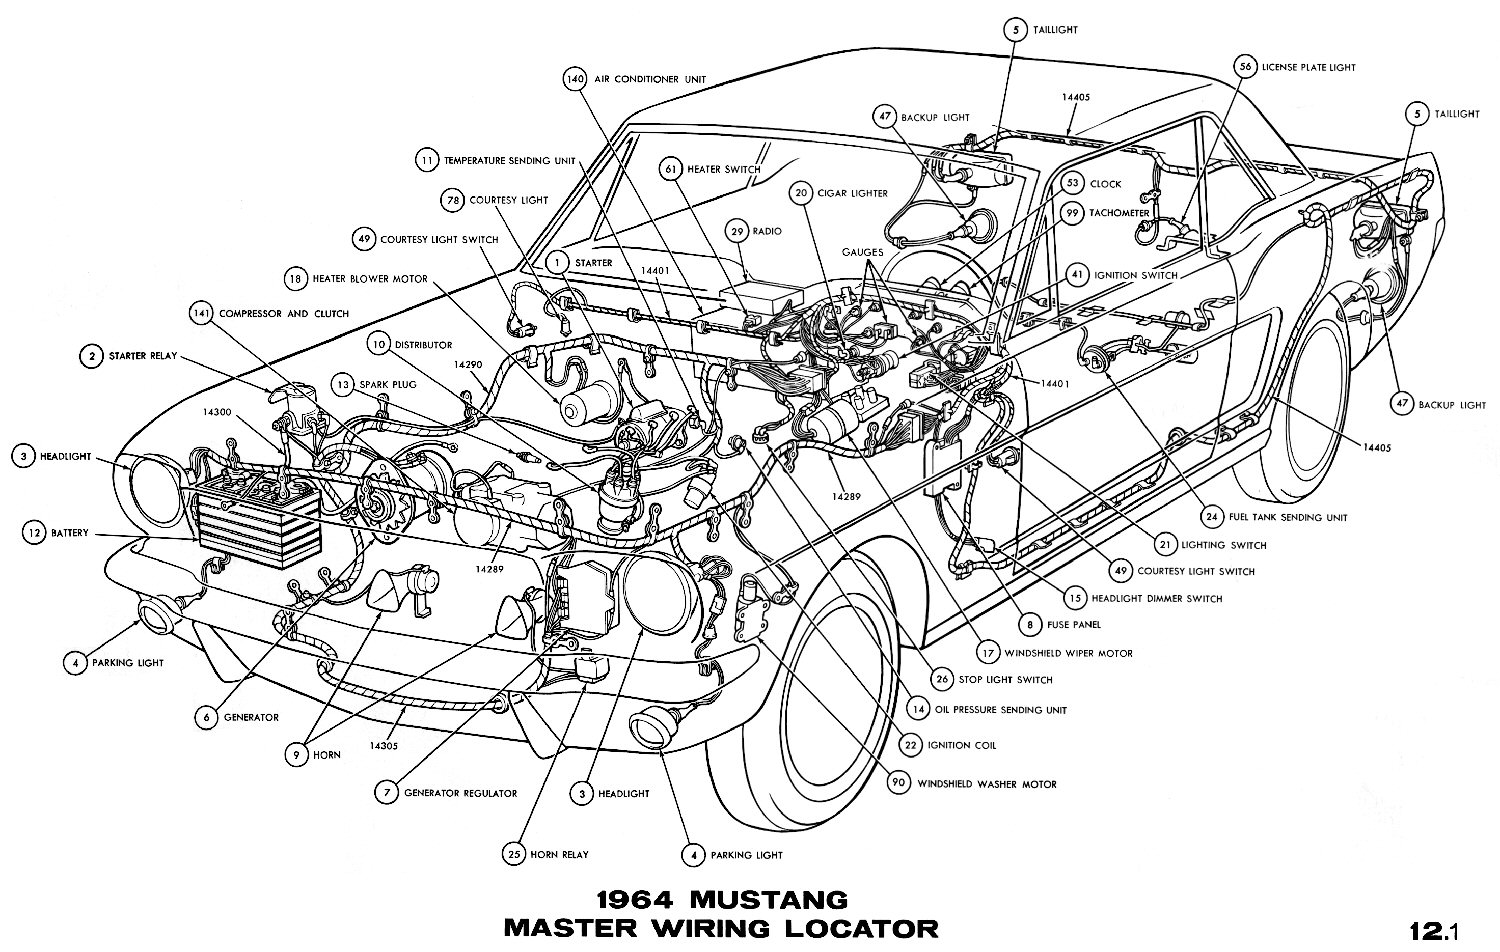 exterior light turn signals and horns wiring diagrams of ... 1966 mustang cluster wiring diagram